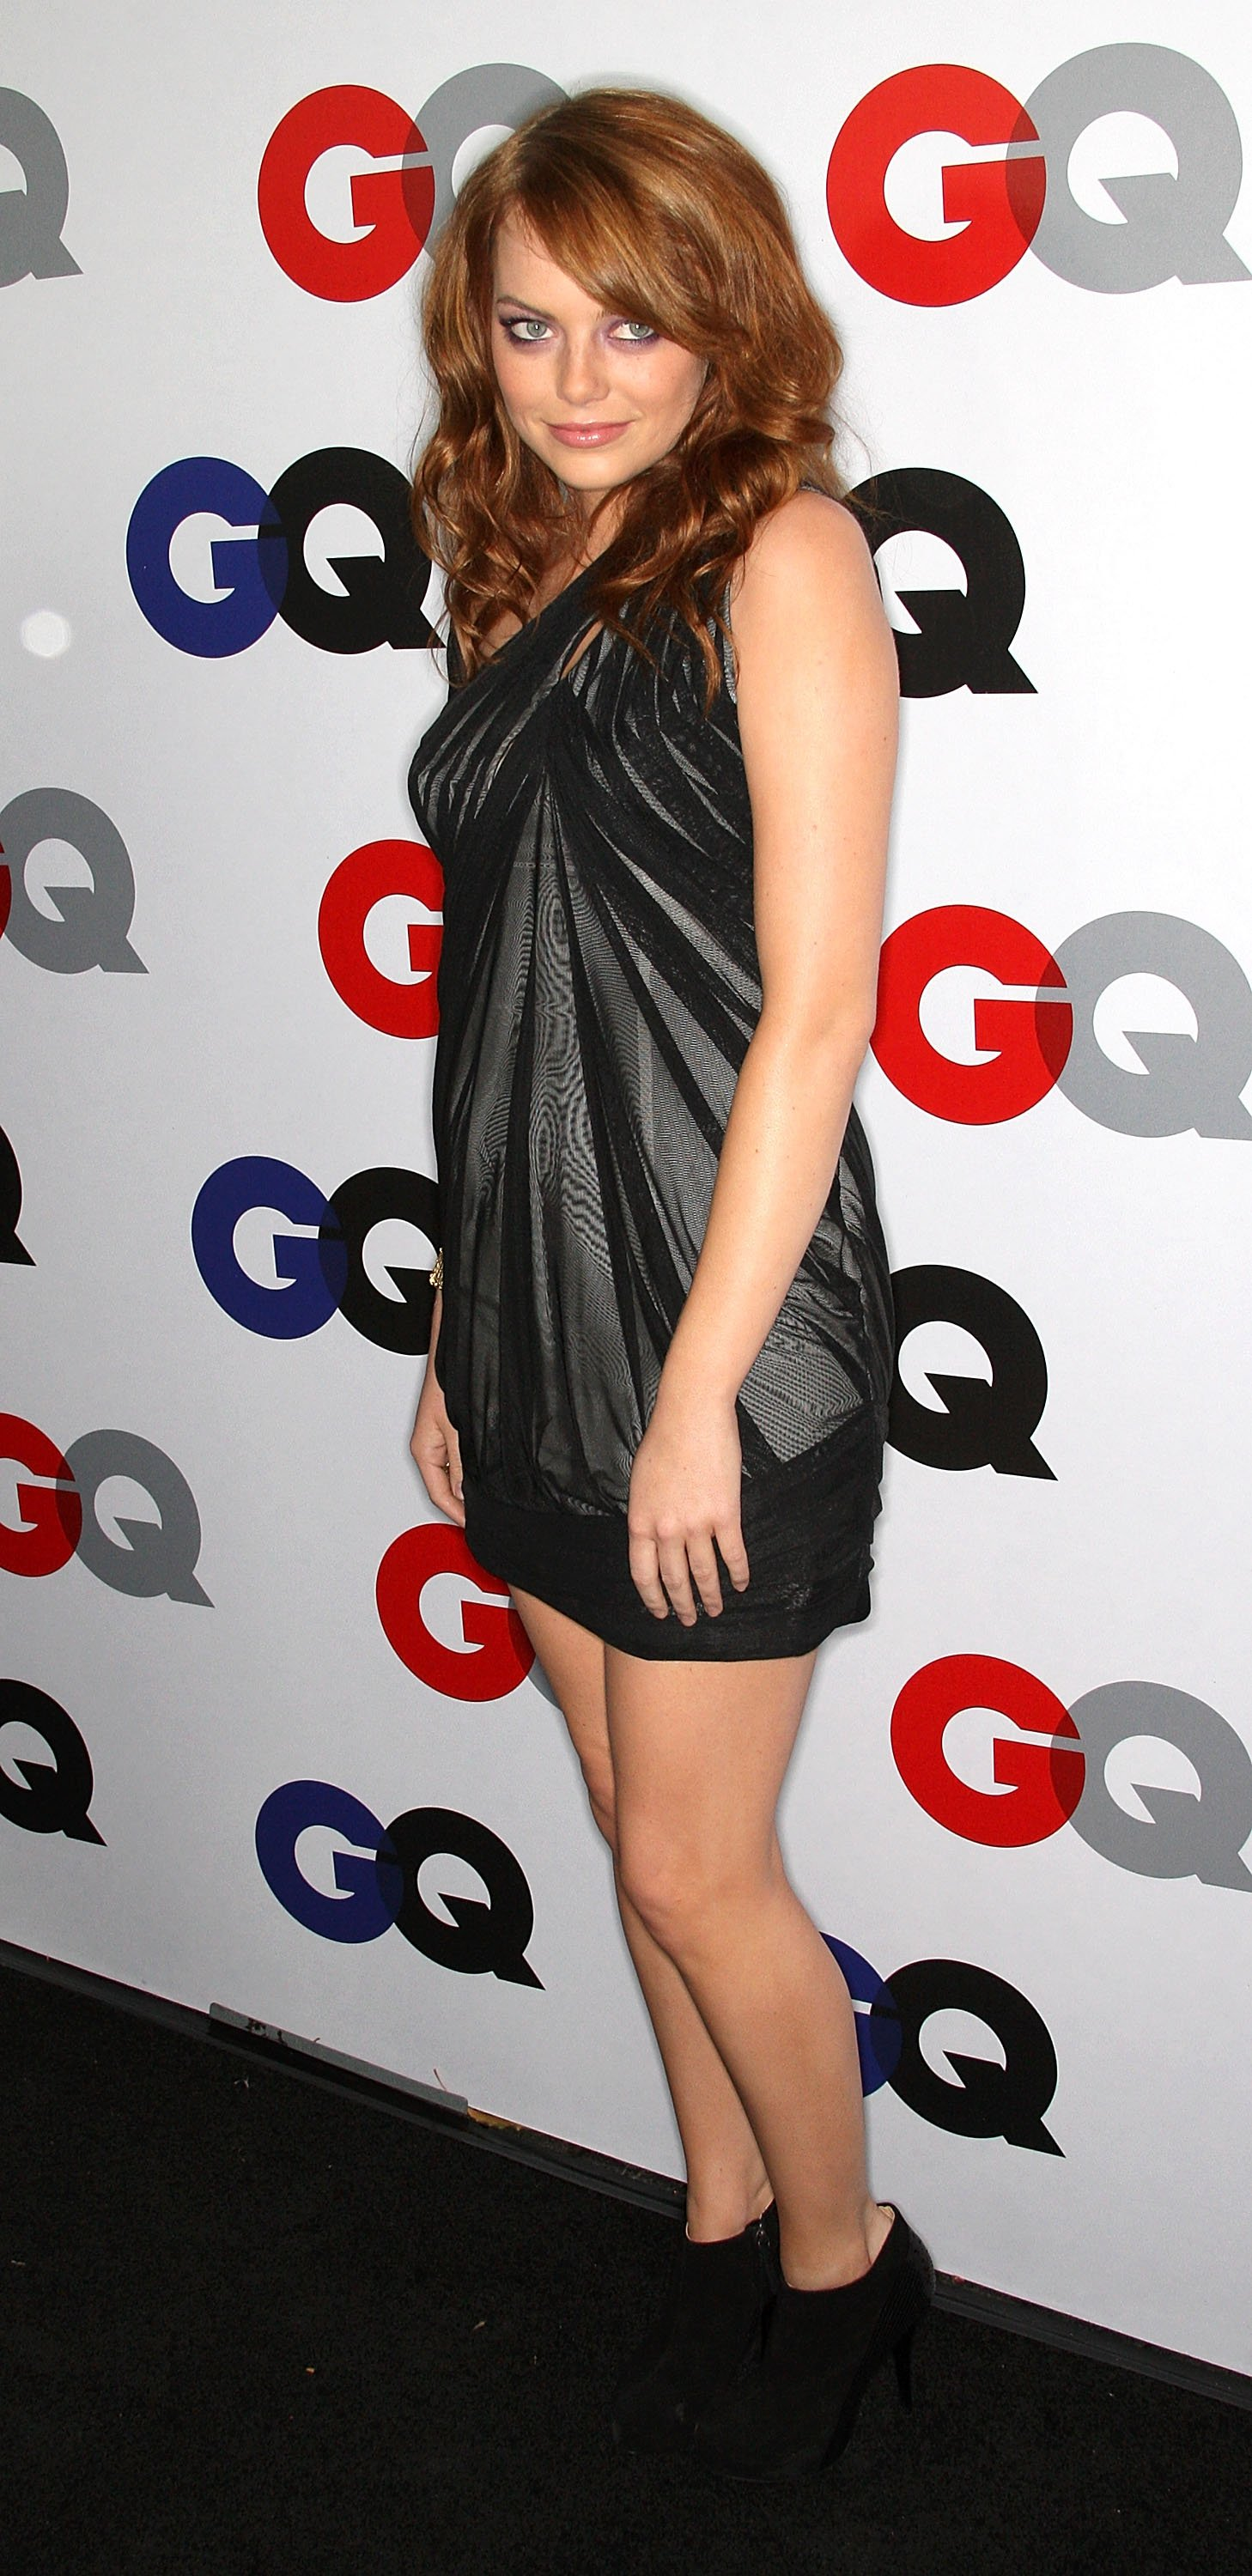 42456_Celebutopia-Emma_Stone-14th_annual_GQ_Men_of_the_Year_Party-04_122_615lo.jpg